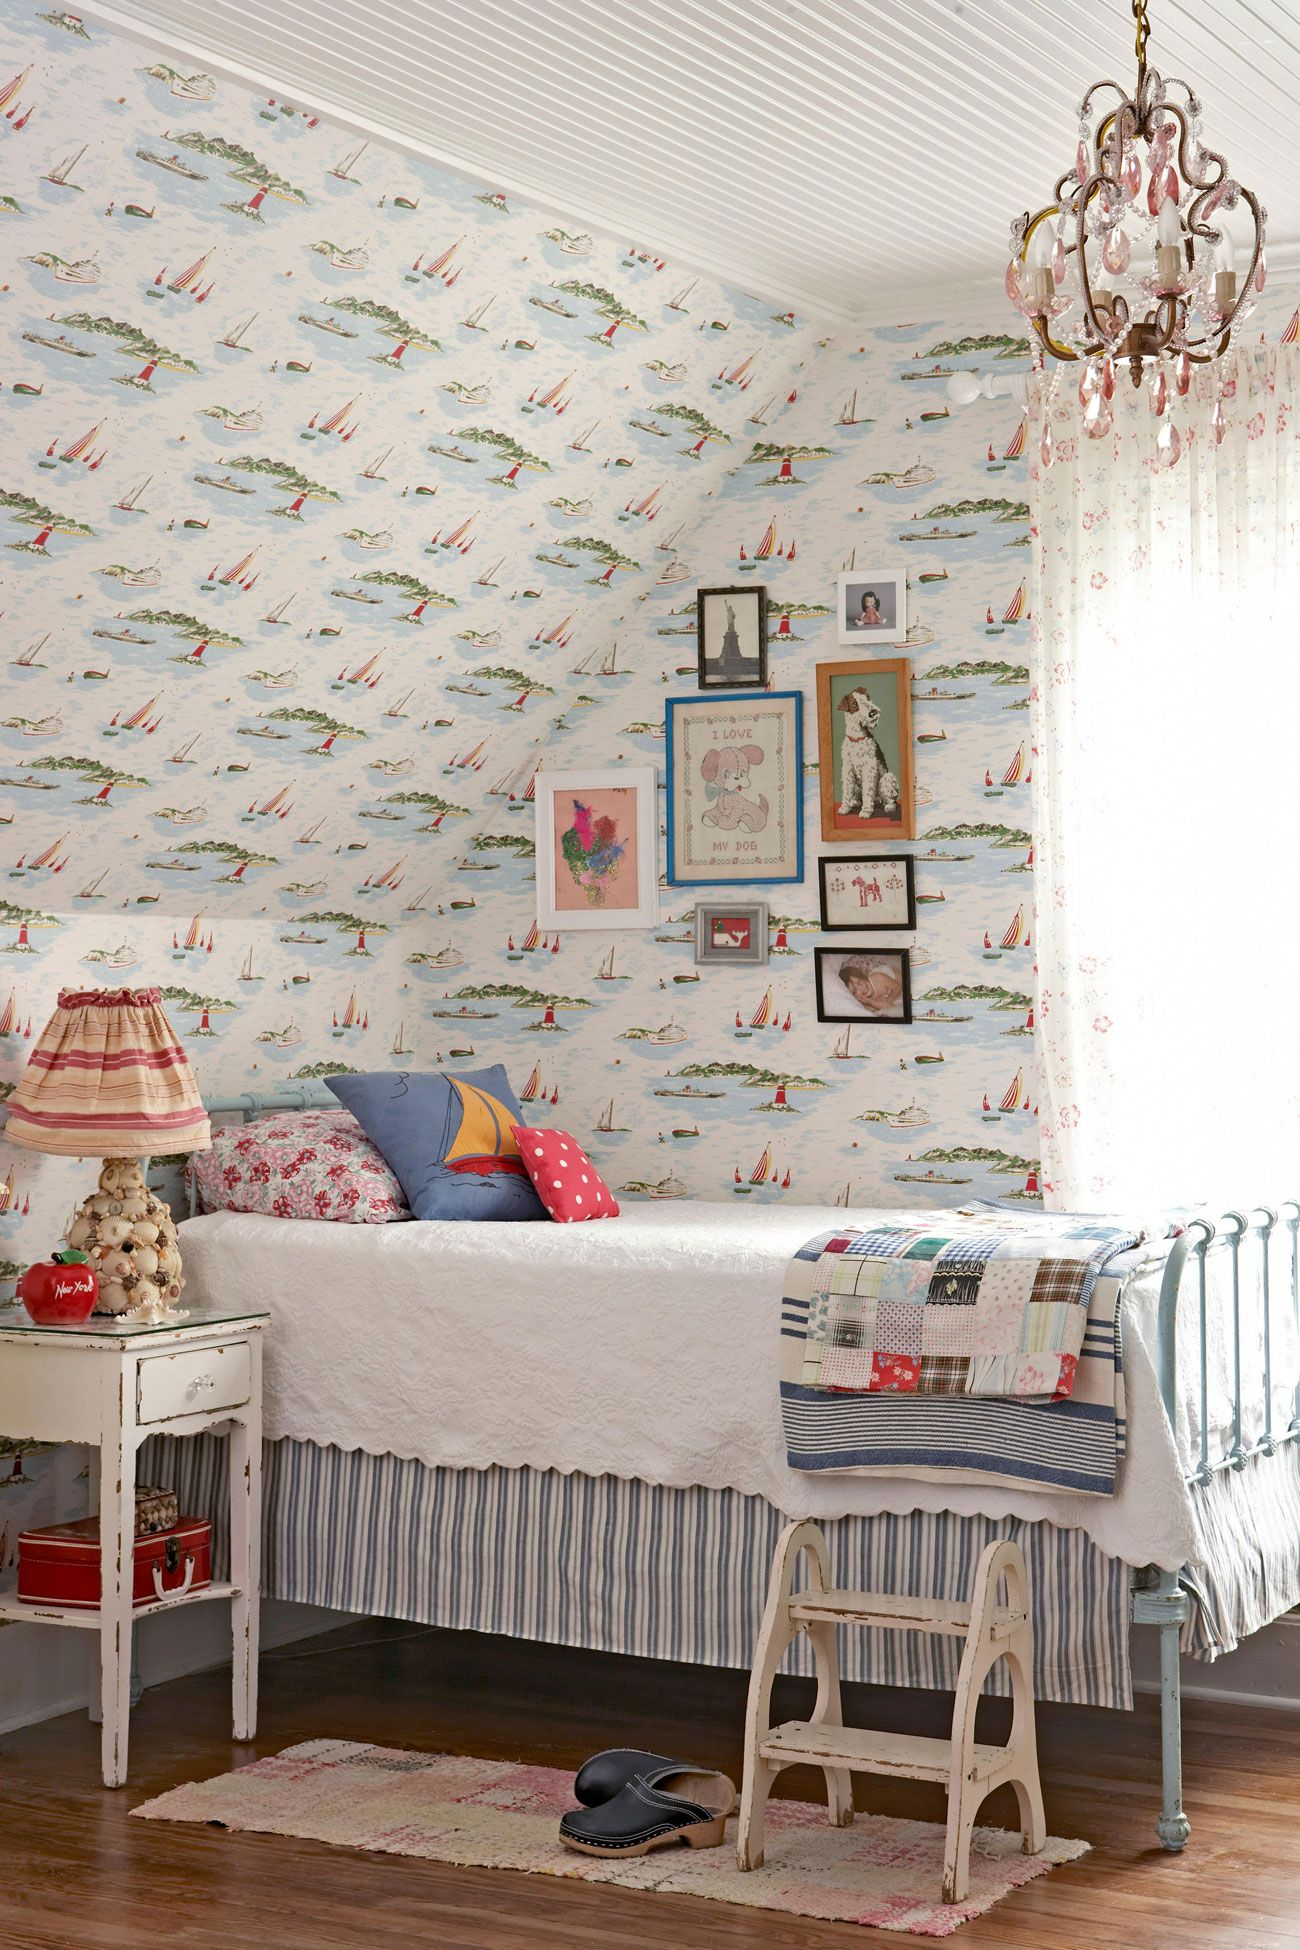 Bring Beach Vibes Into Any Home With These Décor Ideas